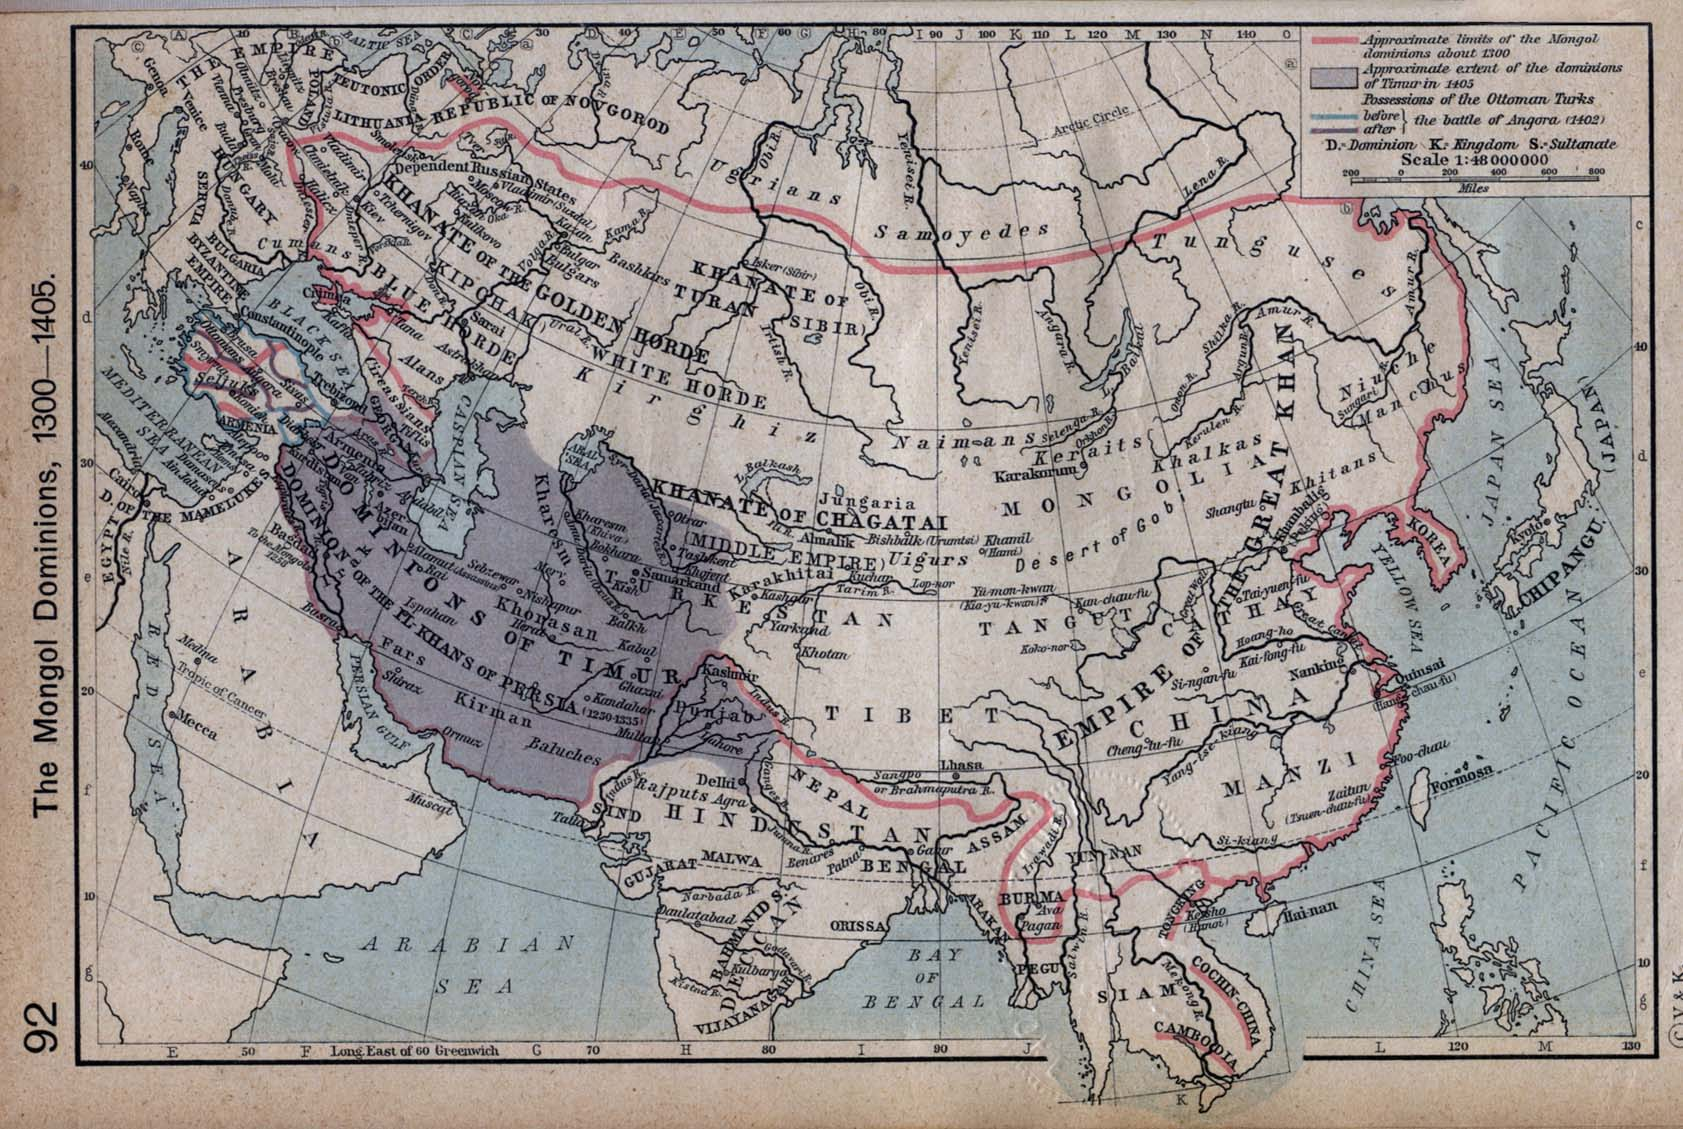 The Mongol Dominions Mapa 1300 - 1405.